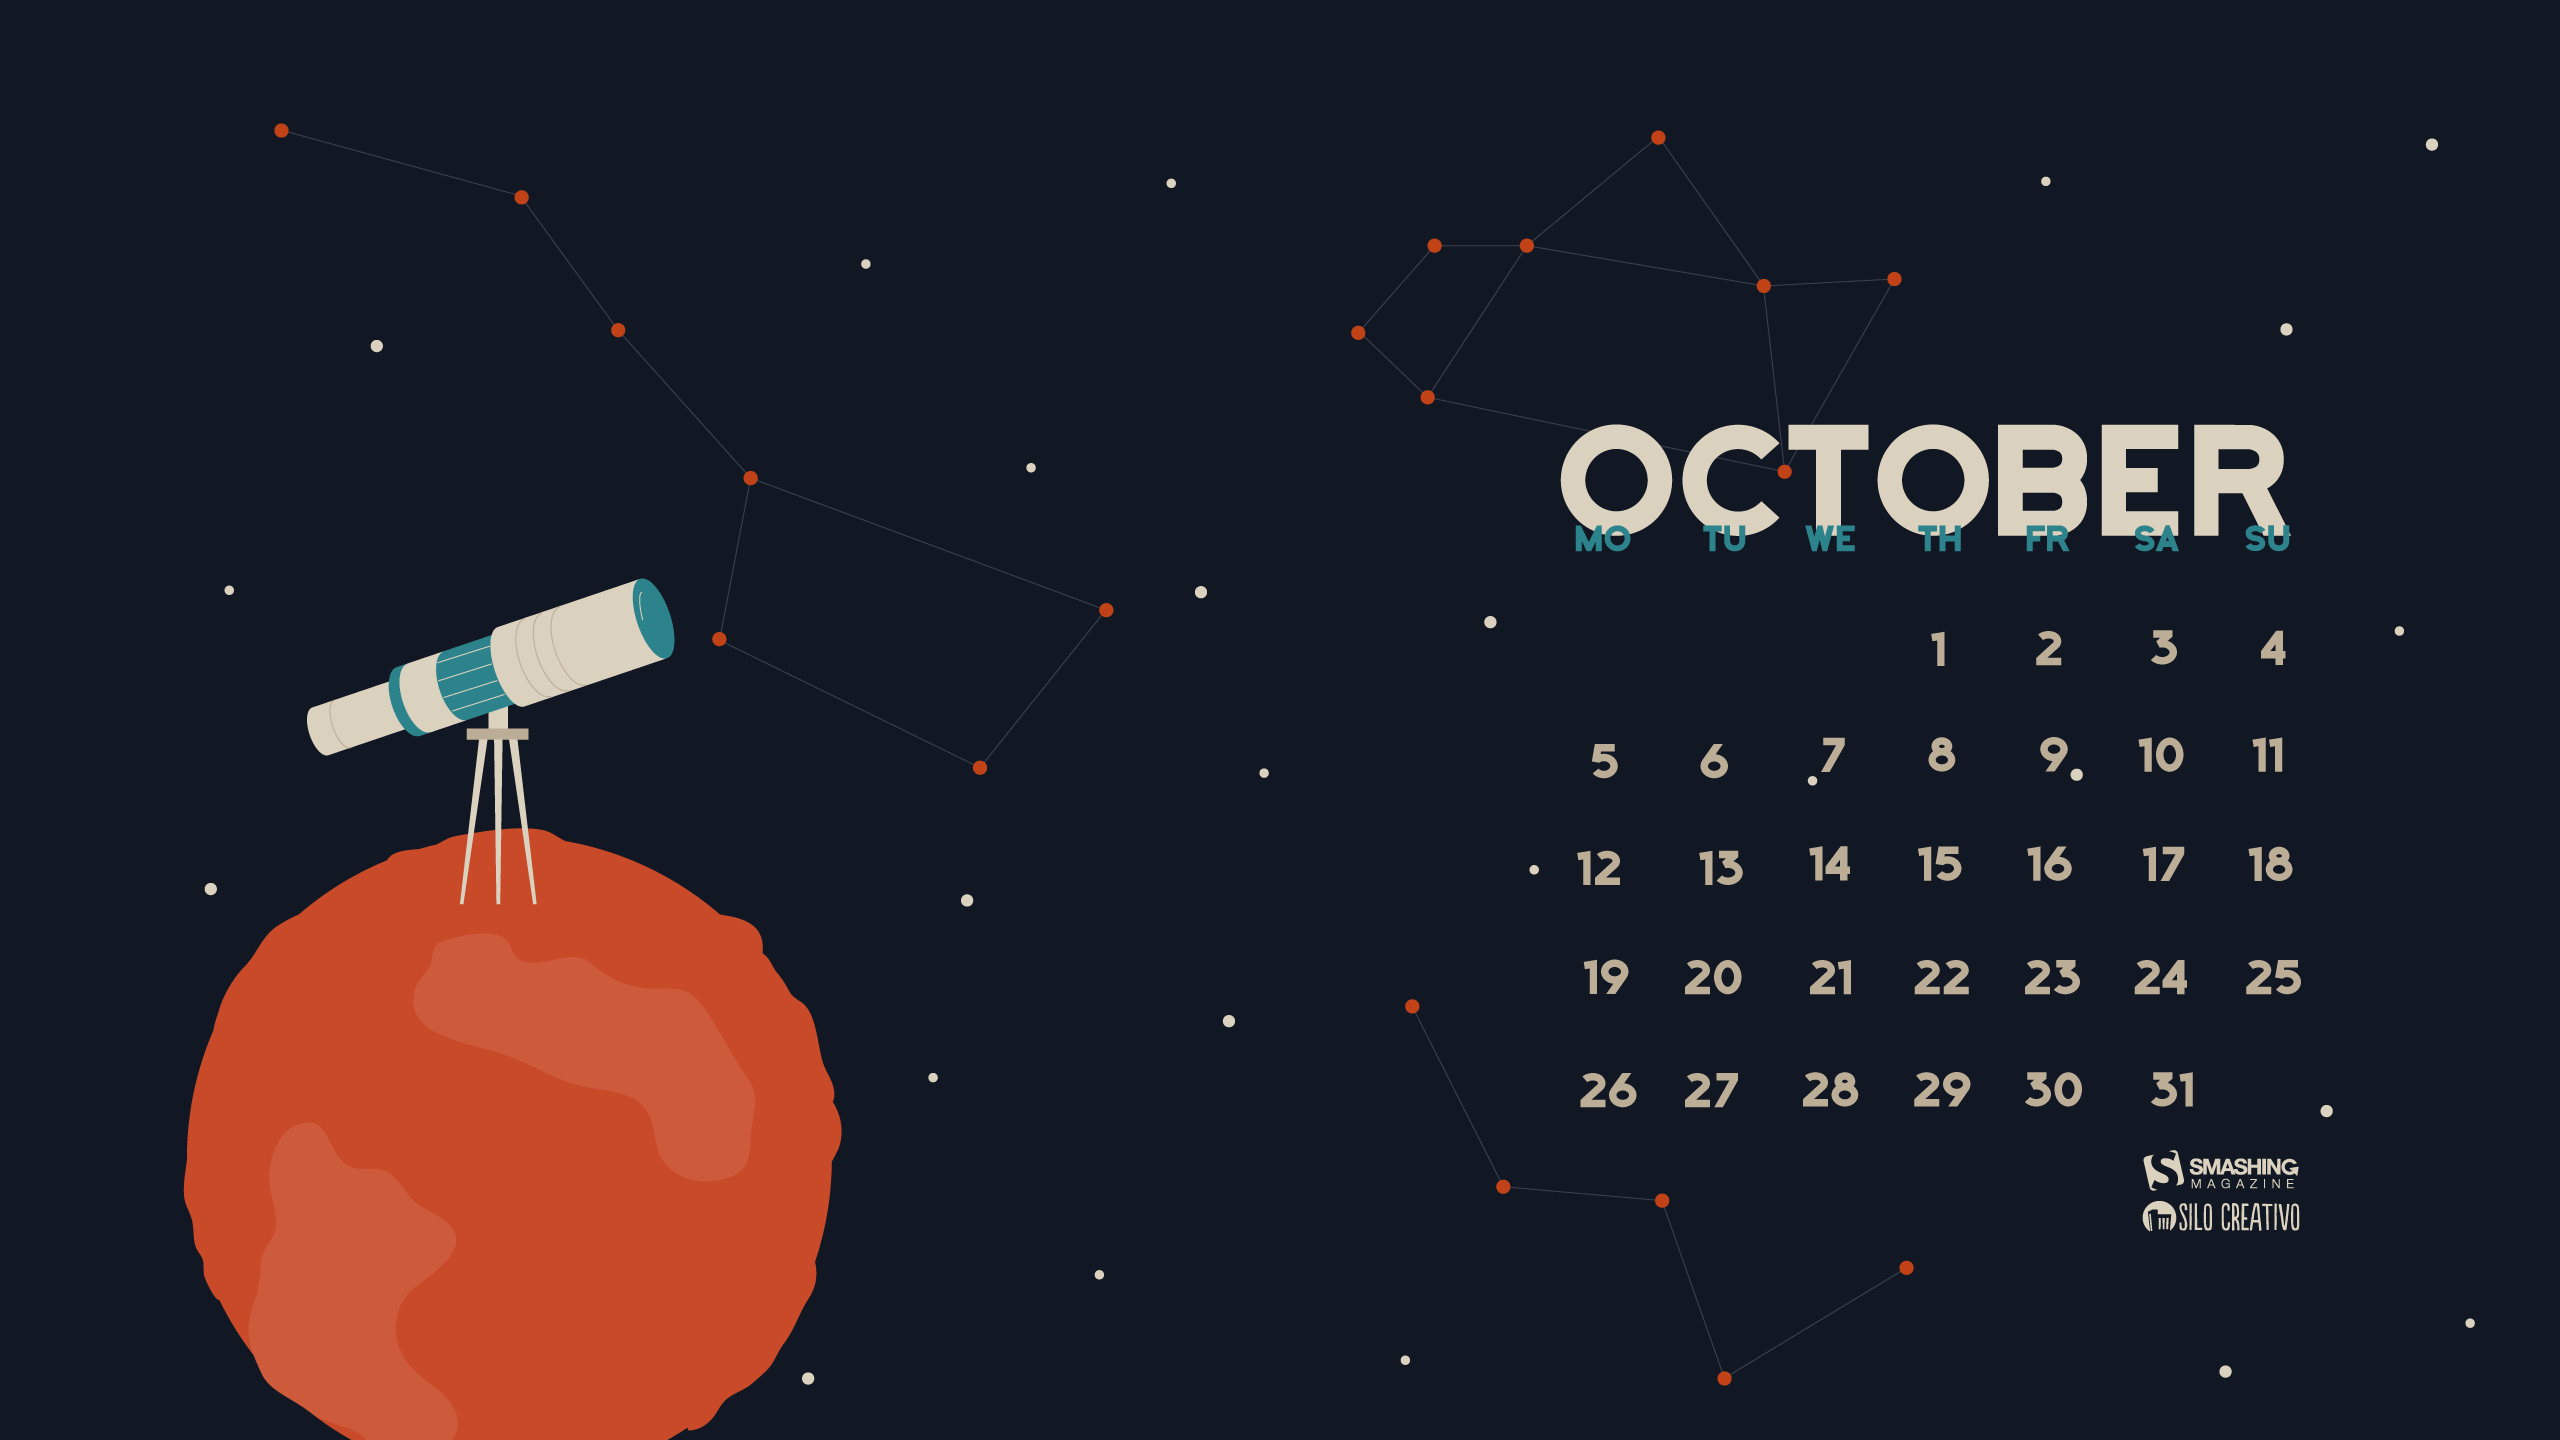 Desktop Wallpaper Calendars October 2015 Smashing Magazine